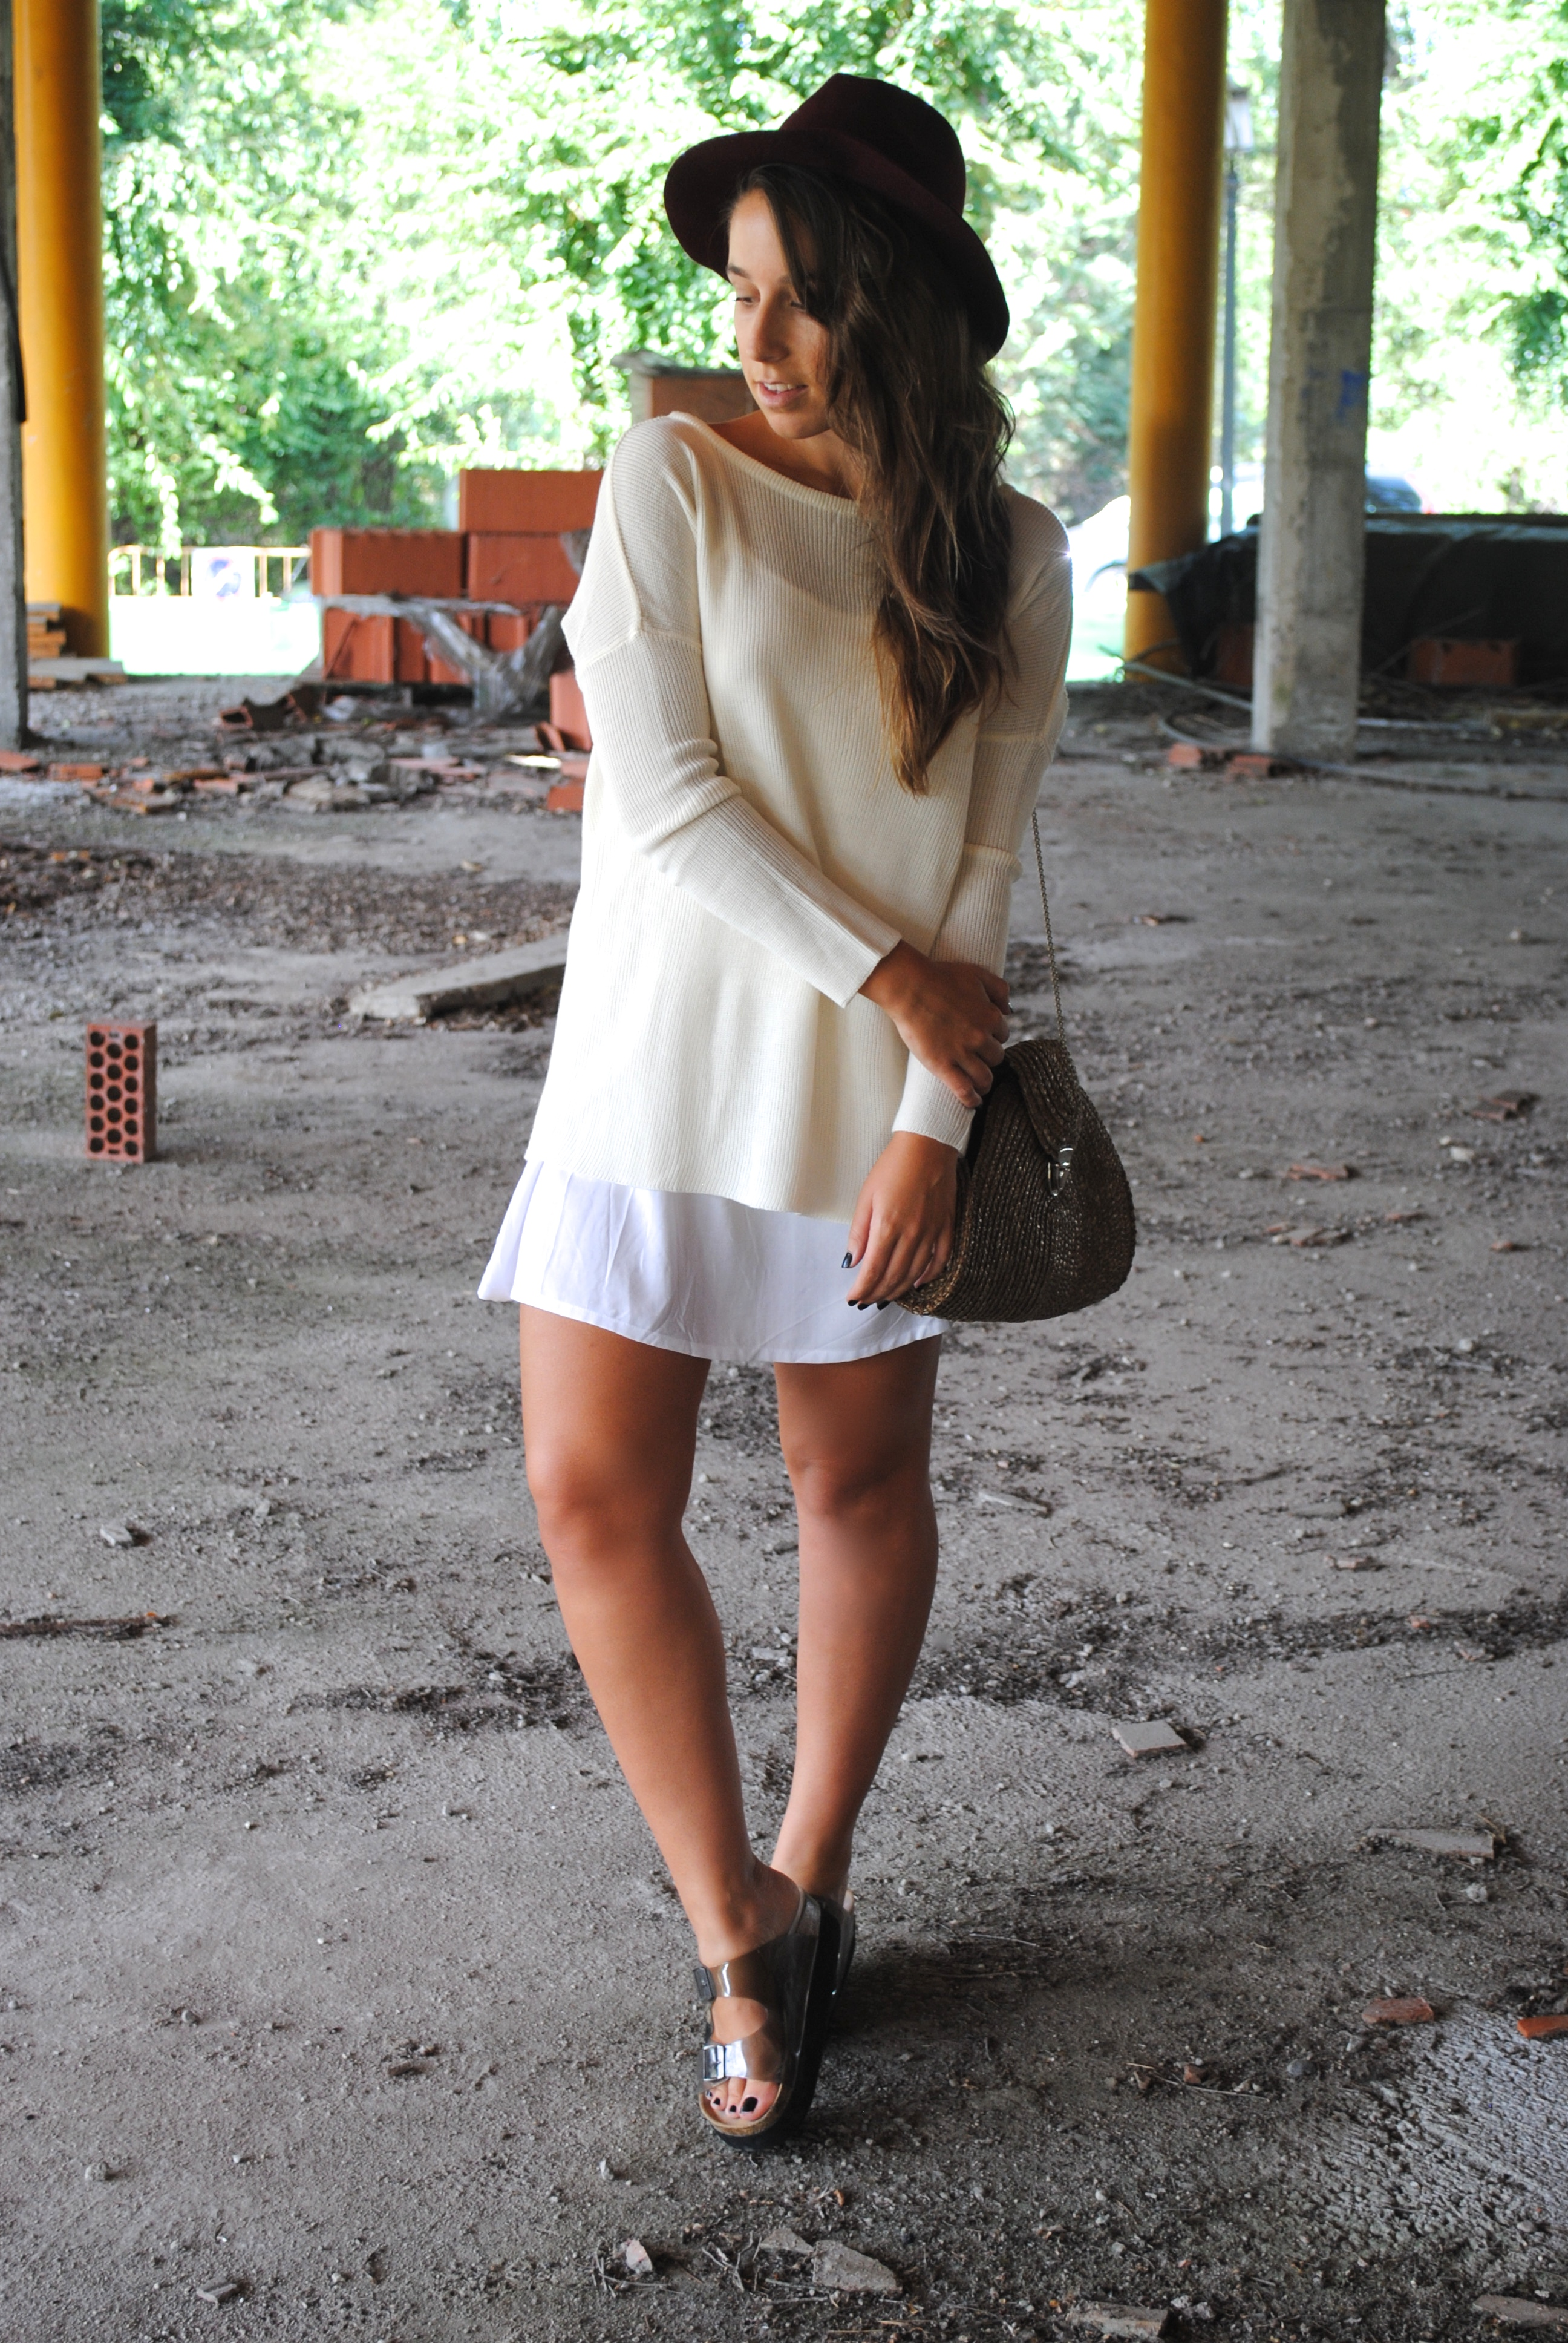 dress and sweater look